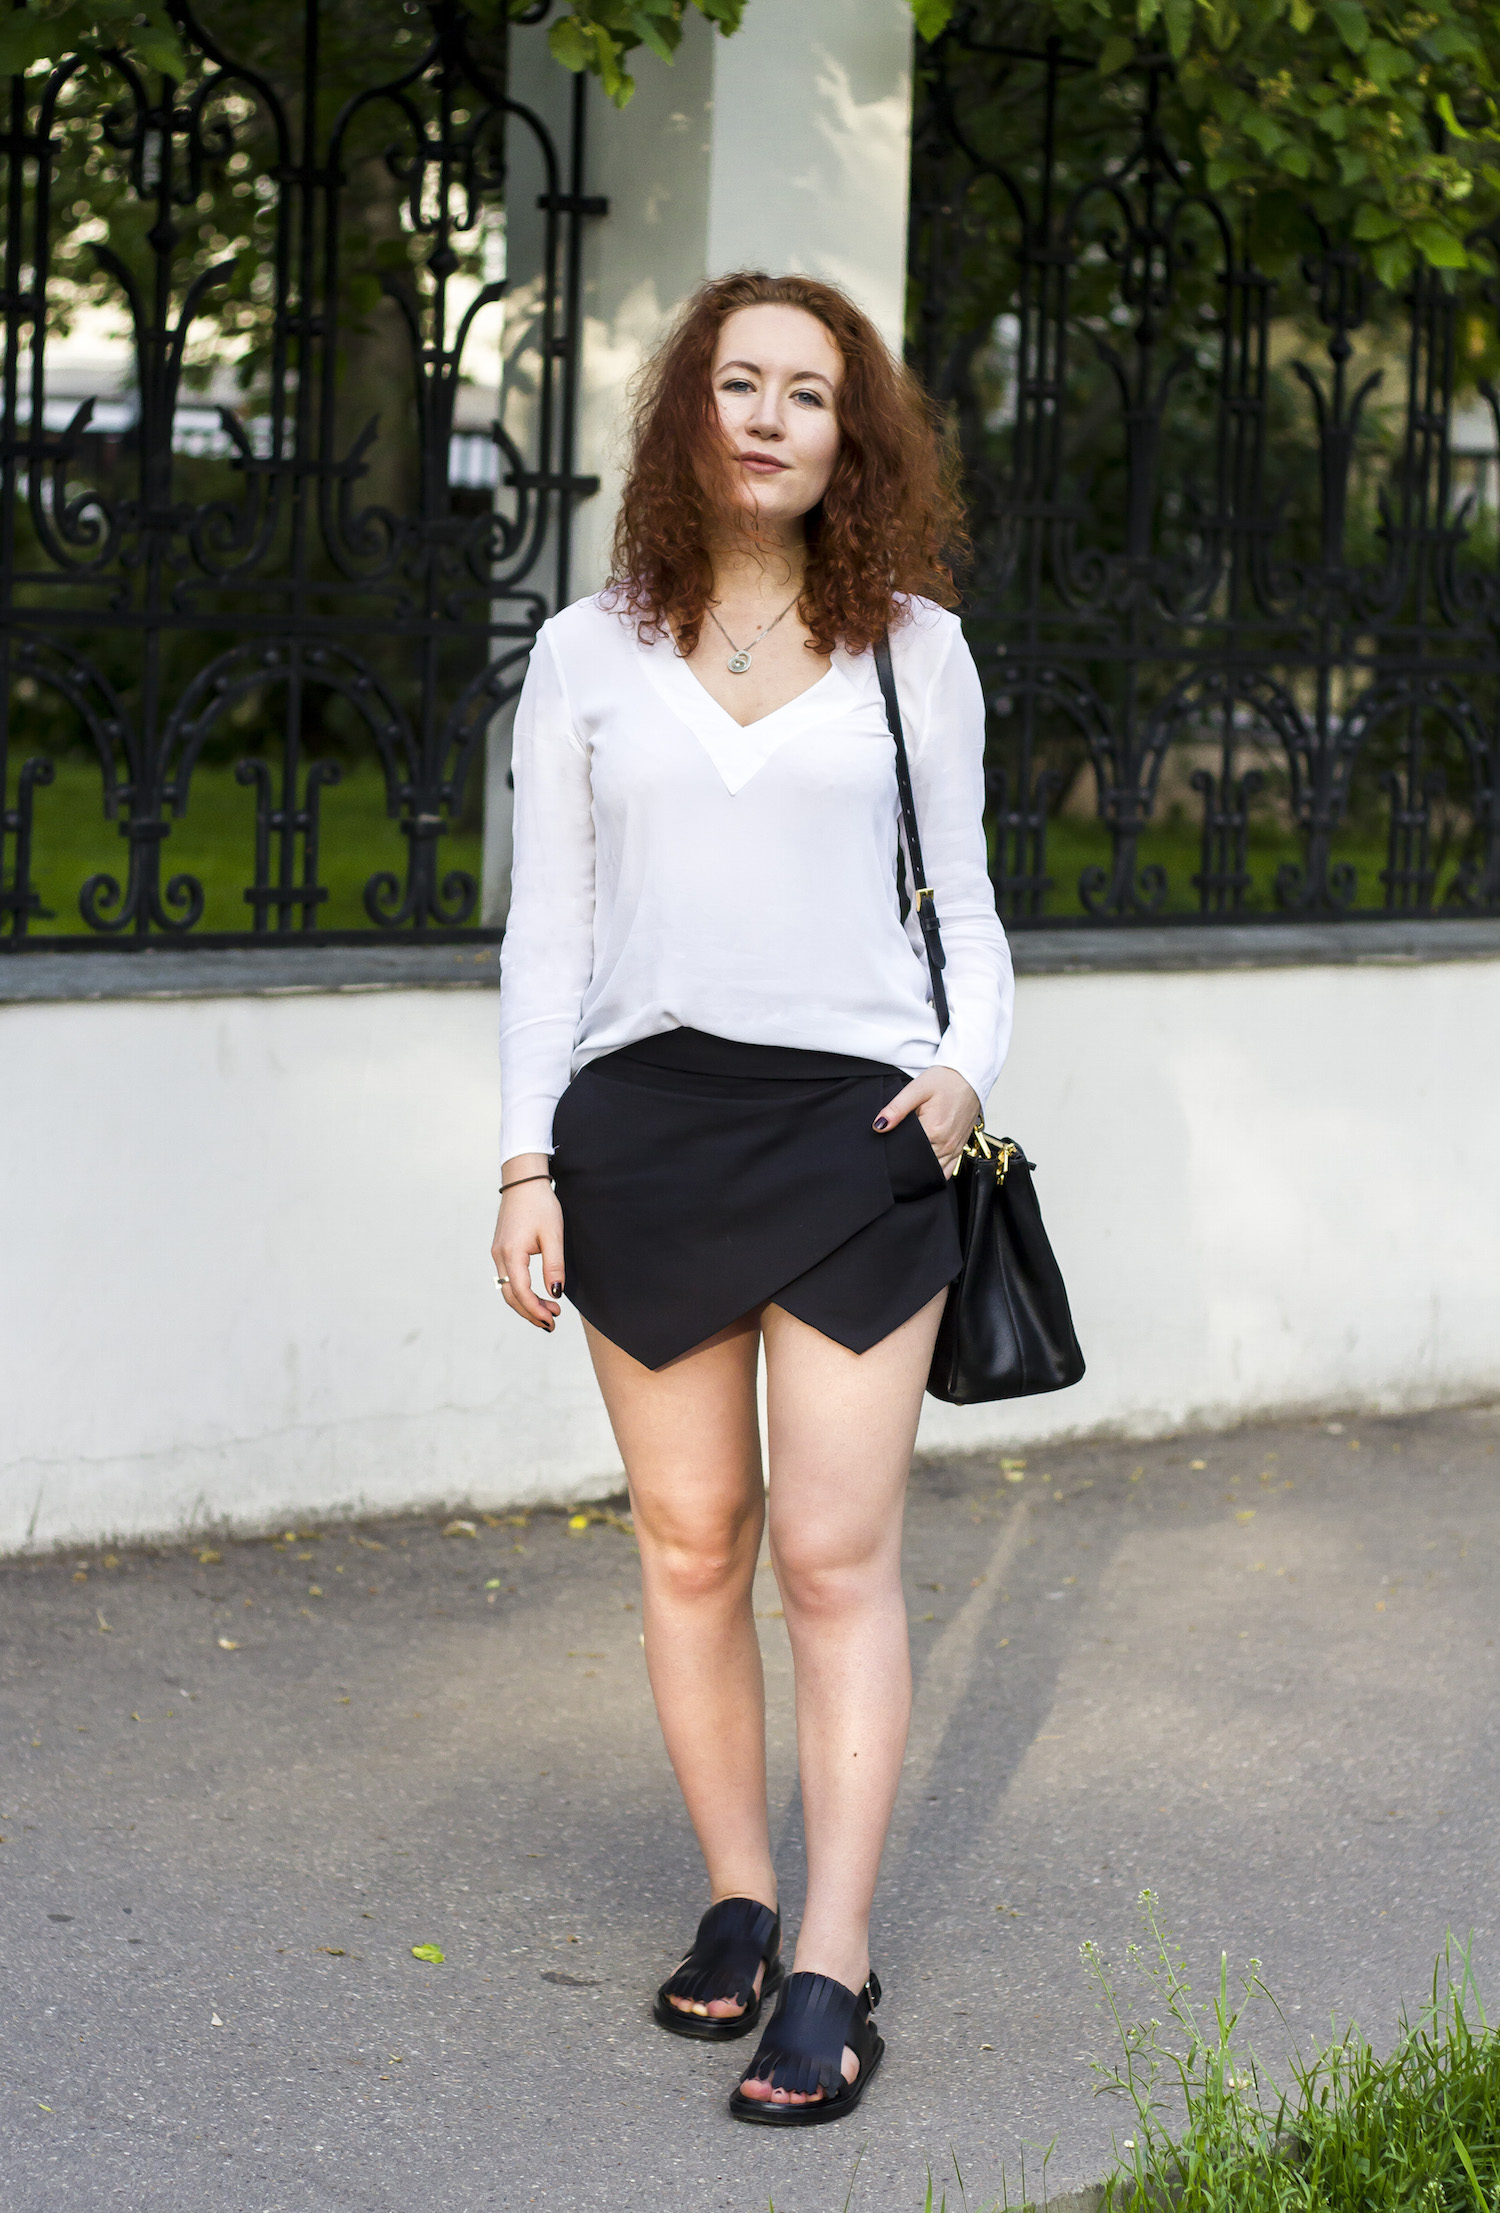 enn franco says fashion blog outfit zara blouse zara shorts prada bag marni sandals chopard necklace